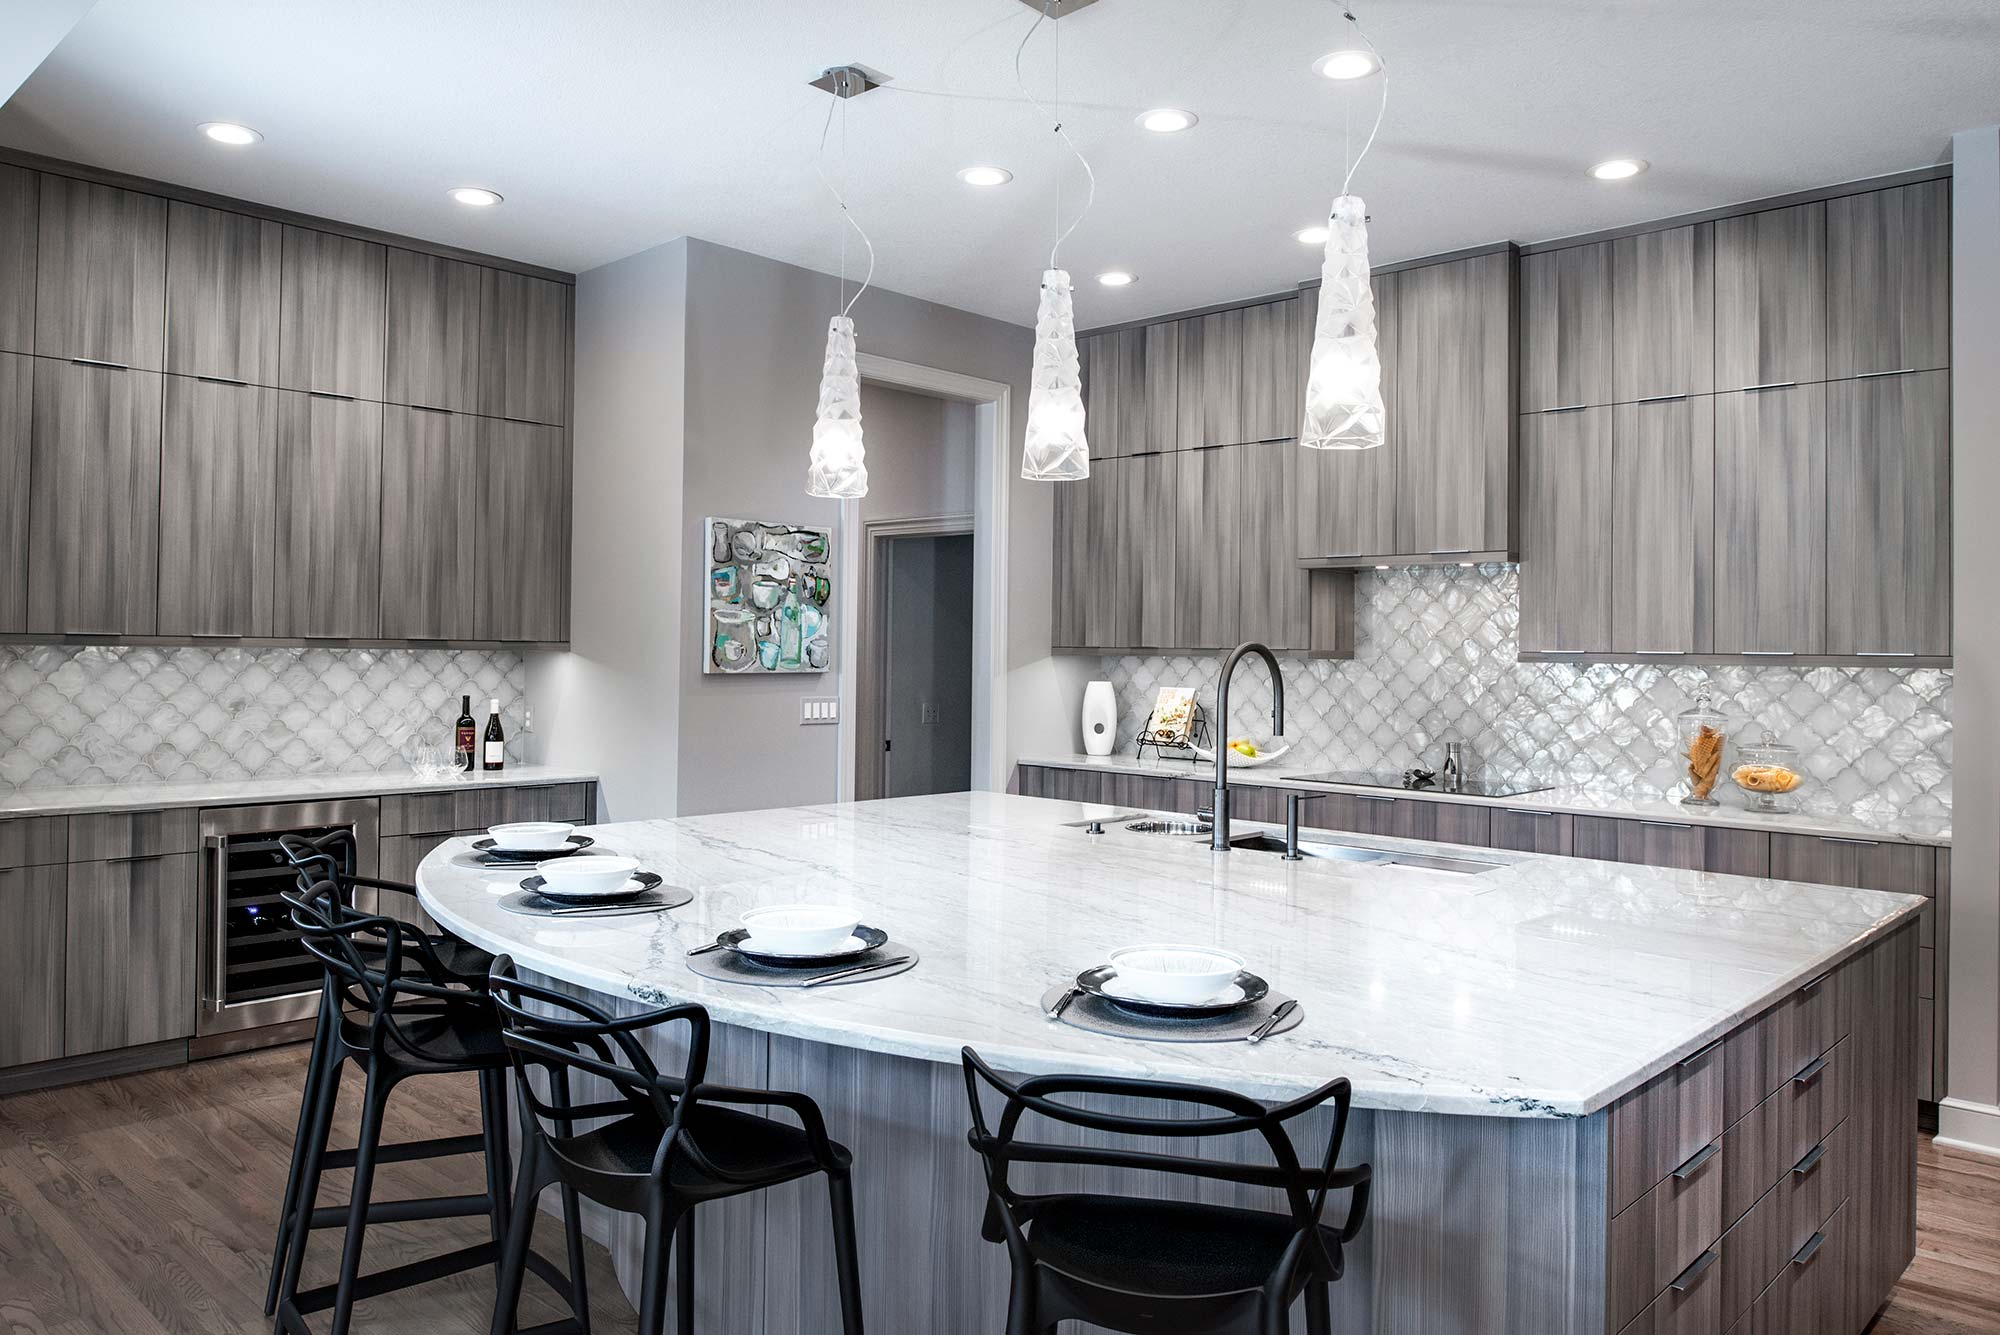 Kitchen Design And Remodel Tulsa Kitchen Ideas Tulsa